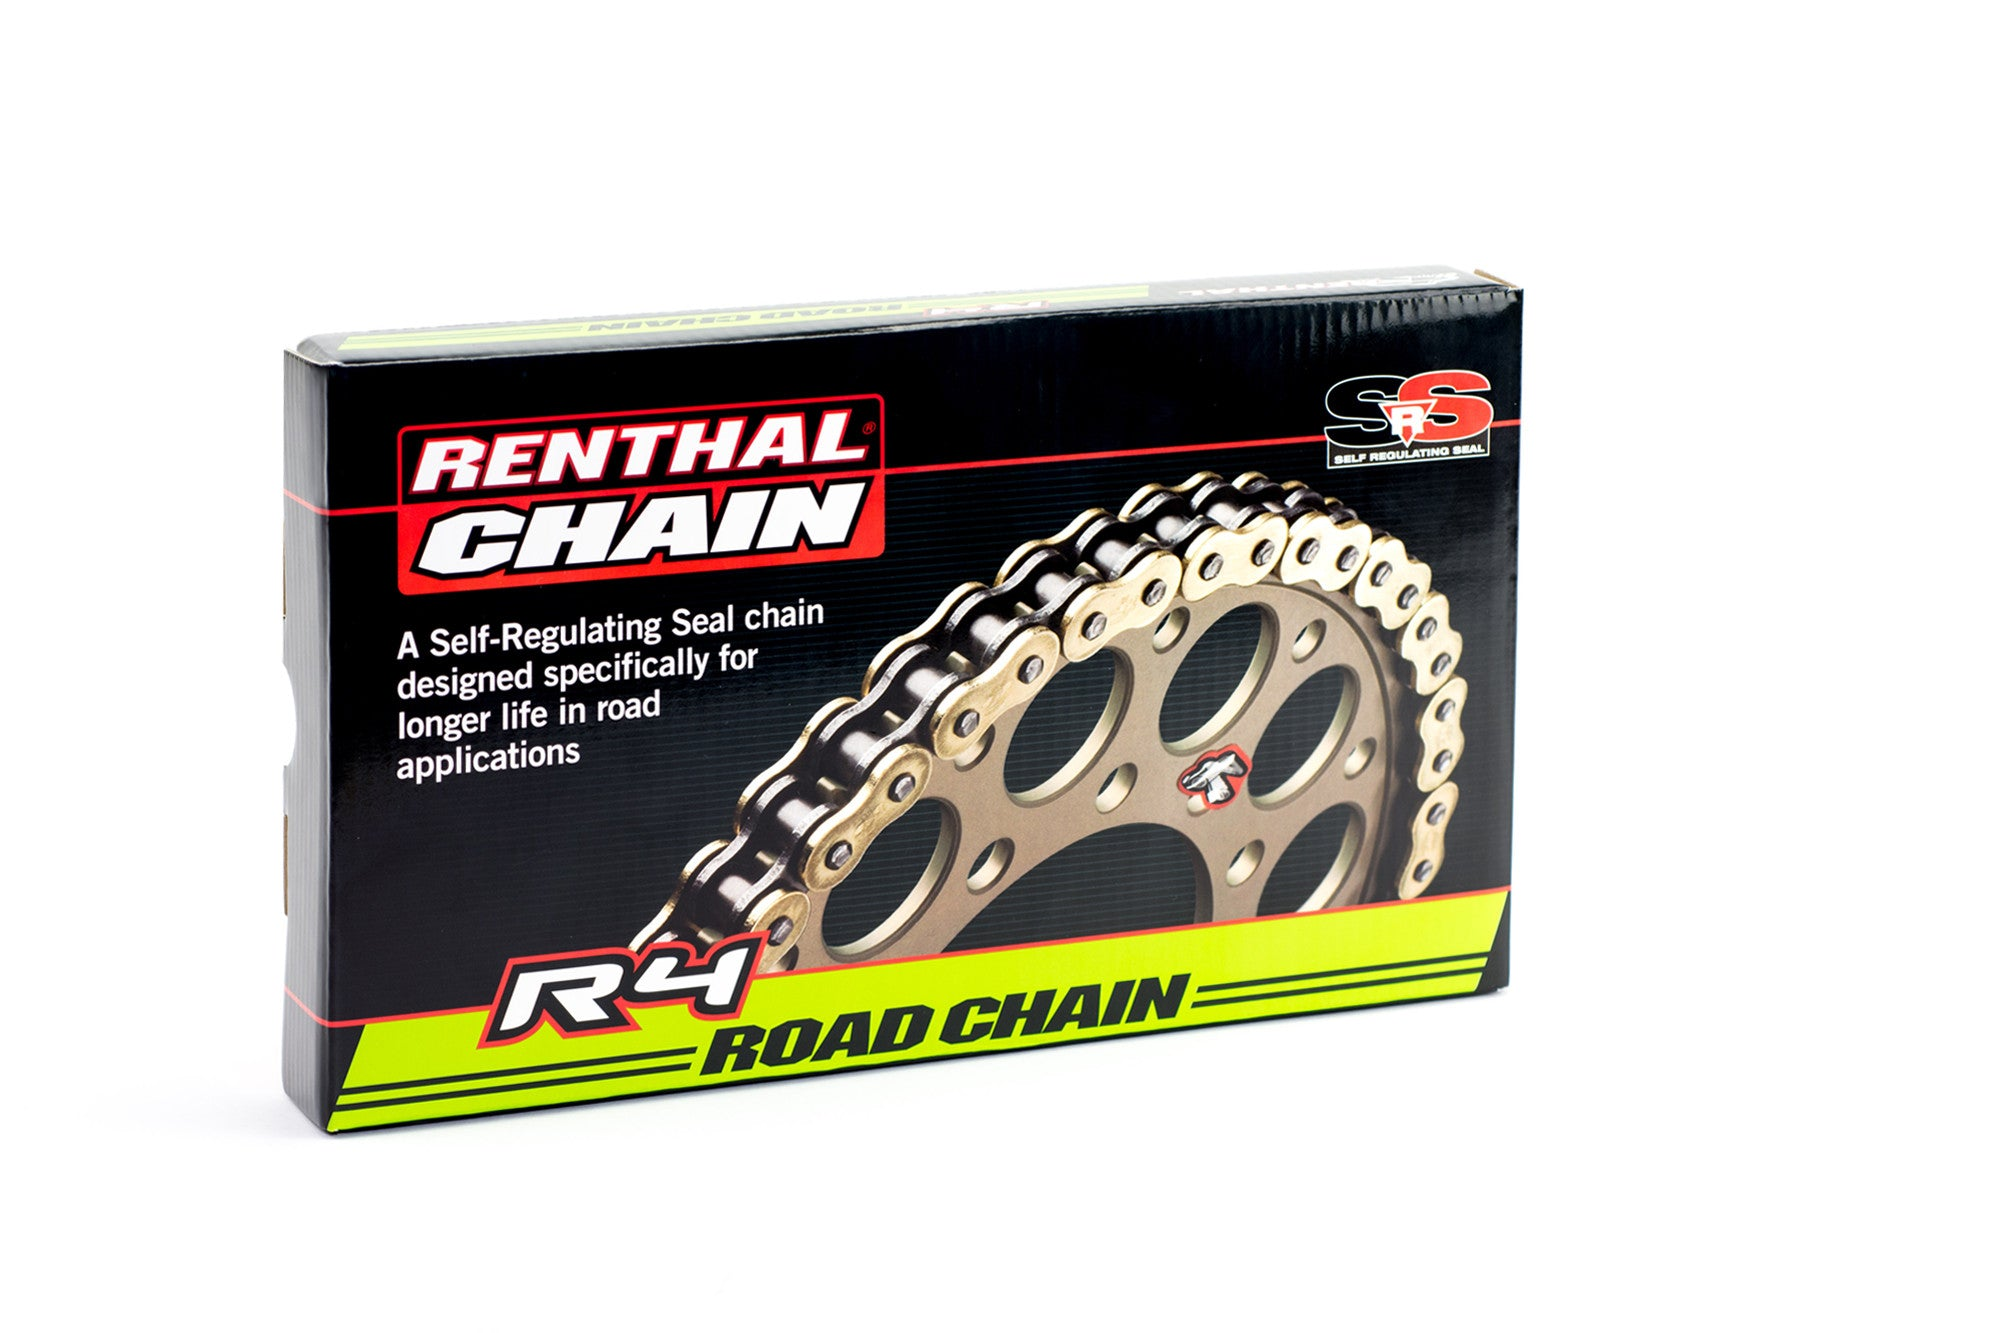 Renthal Chains